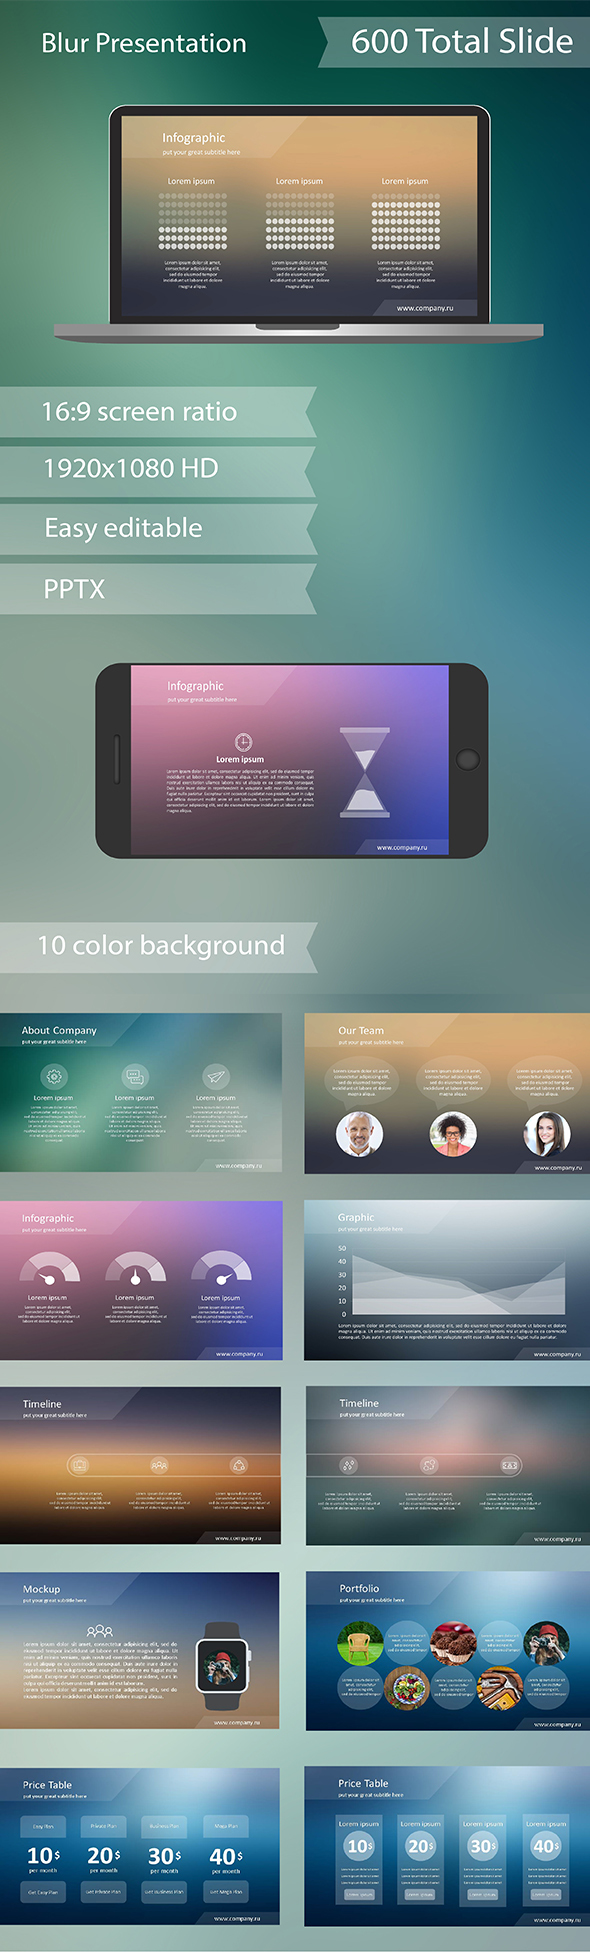 Blur PowerPoint presentation - Business PowerPoint Templates